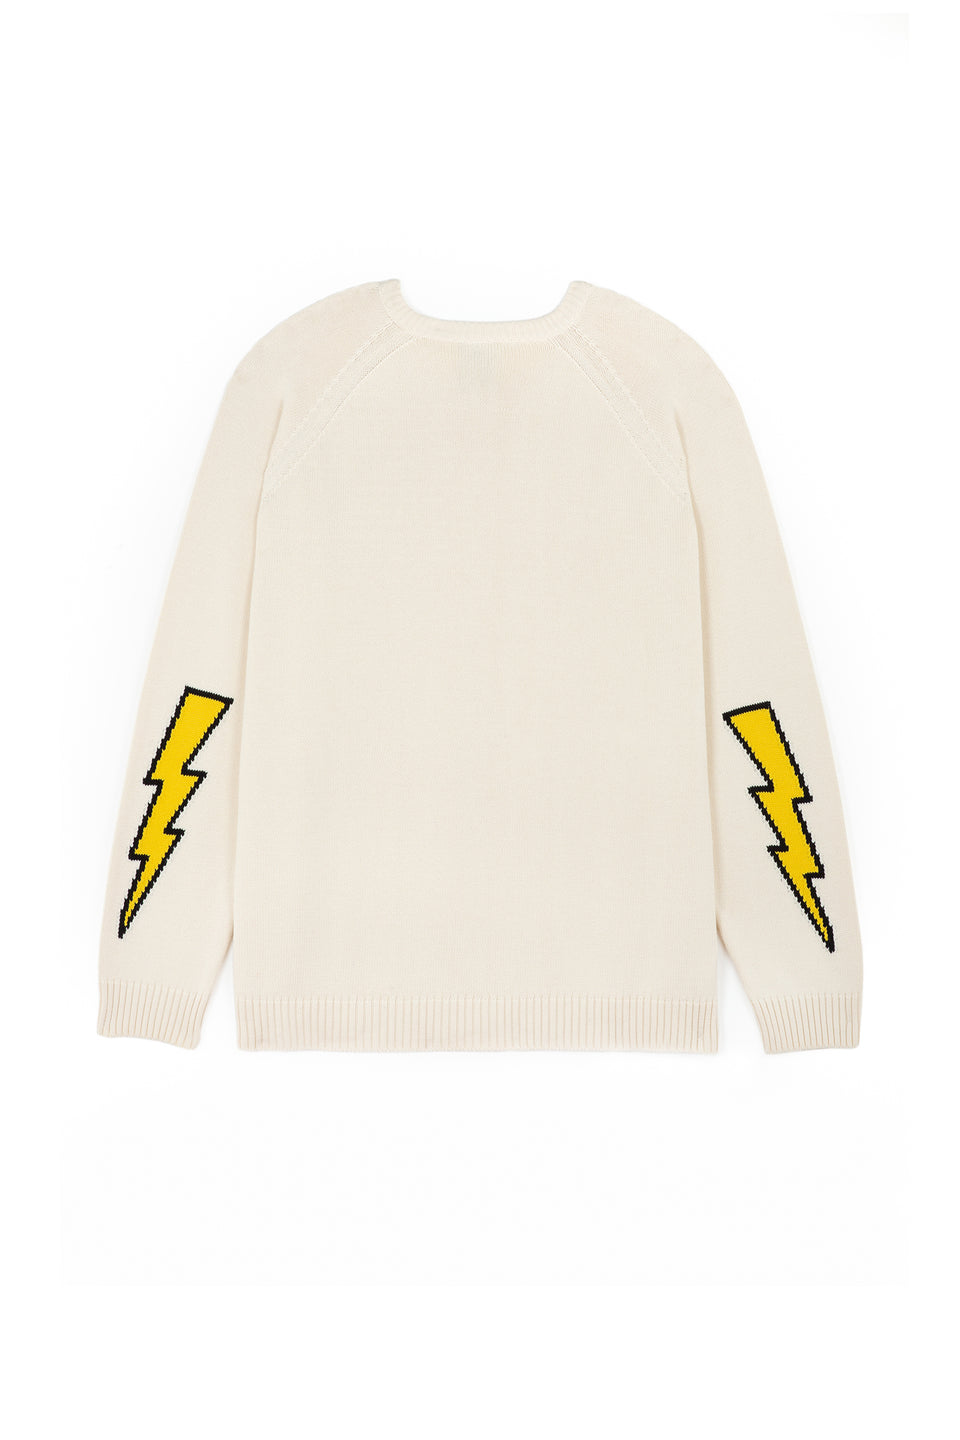 Bolt Arm Cardigan (White)